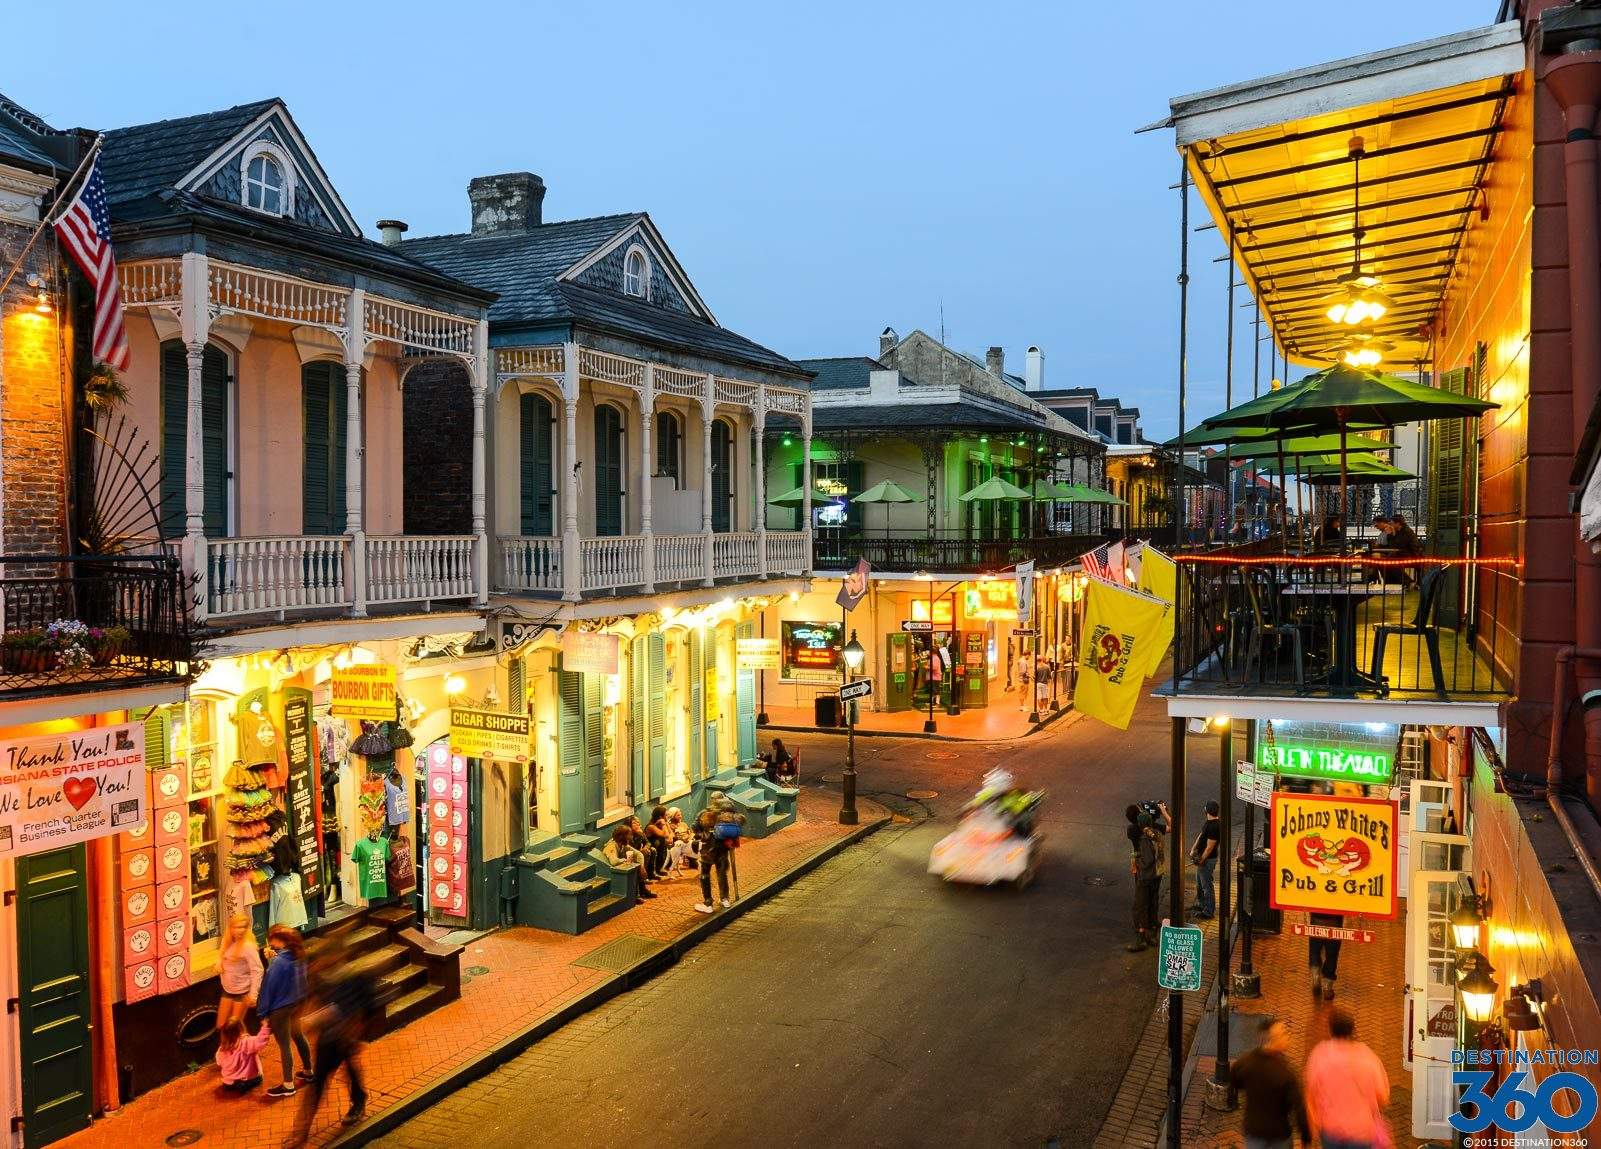 new orleans Find things to do in new orleans – discover tourist attractions, schedule tours, plan fun vacation sightseeing activities and book them all on expedia.